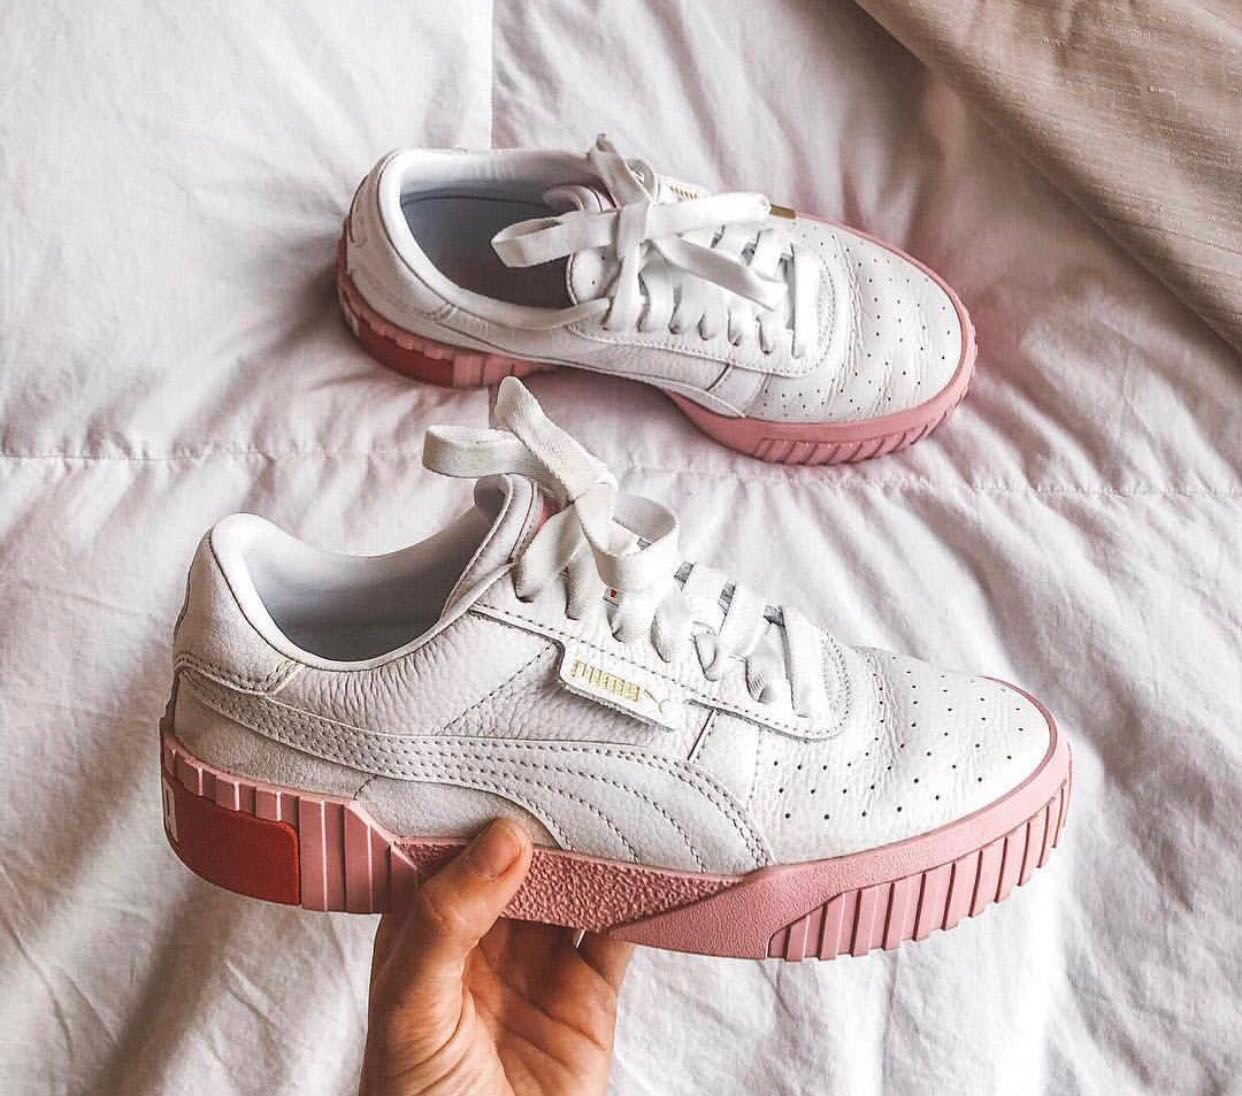 c13d49be11e1 Puma Cali white and pink trainers